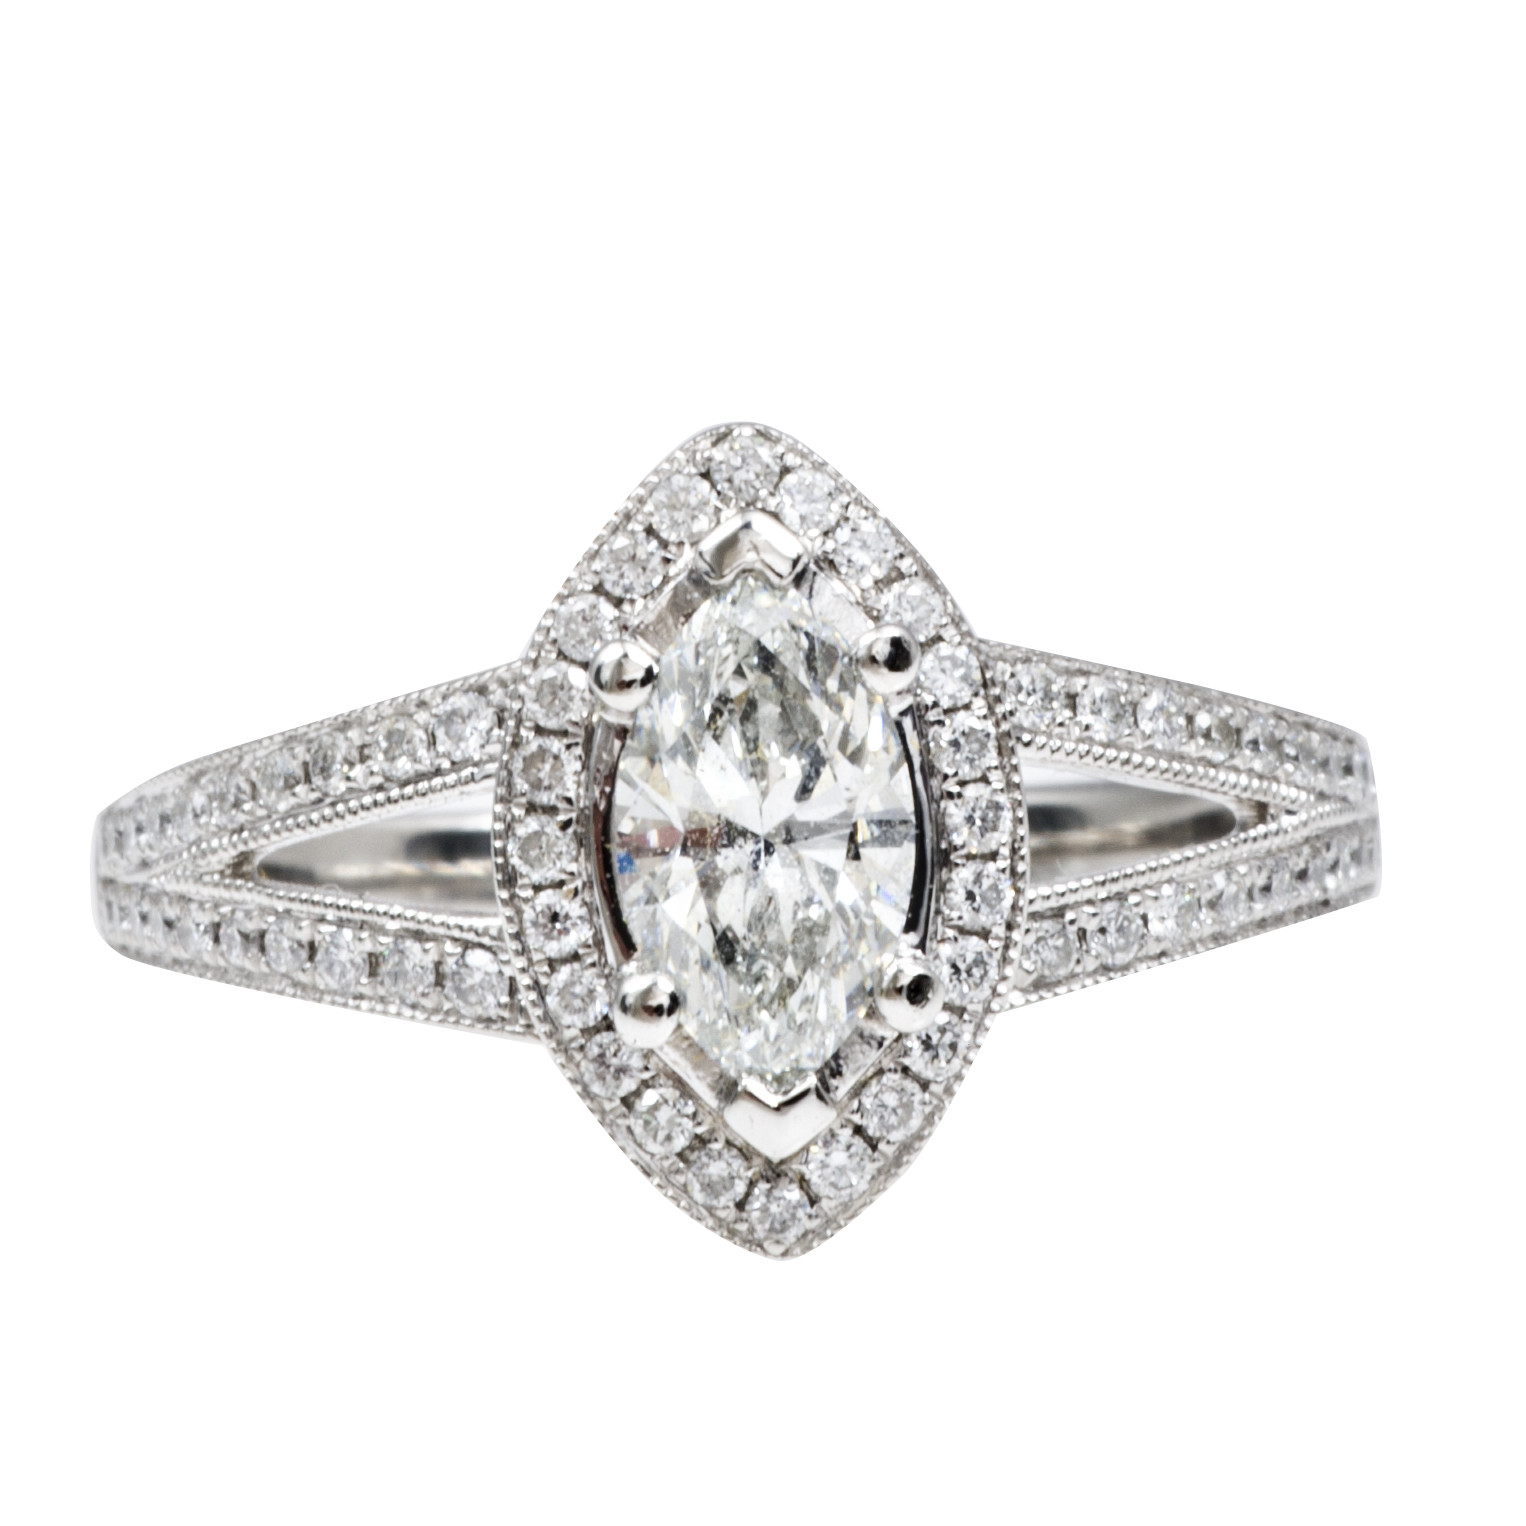 Vintage 1.02 CTW Marquise Diamond Engagement Ring